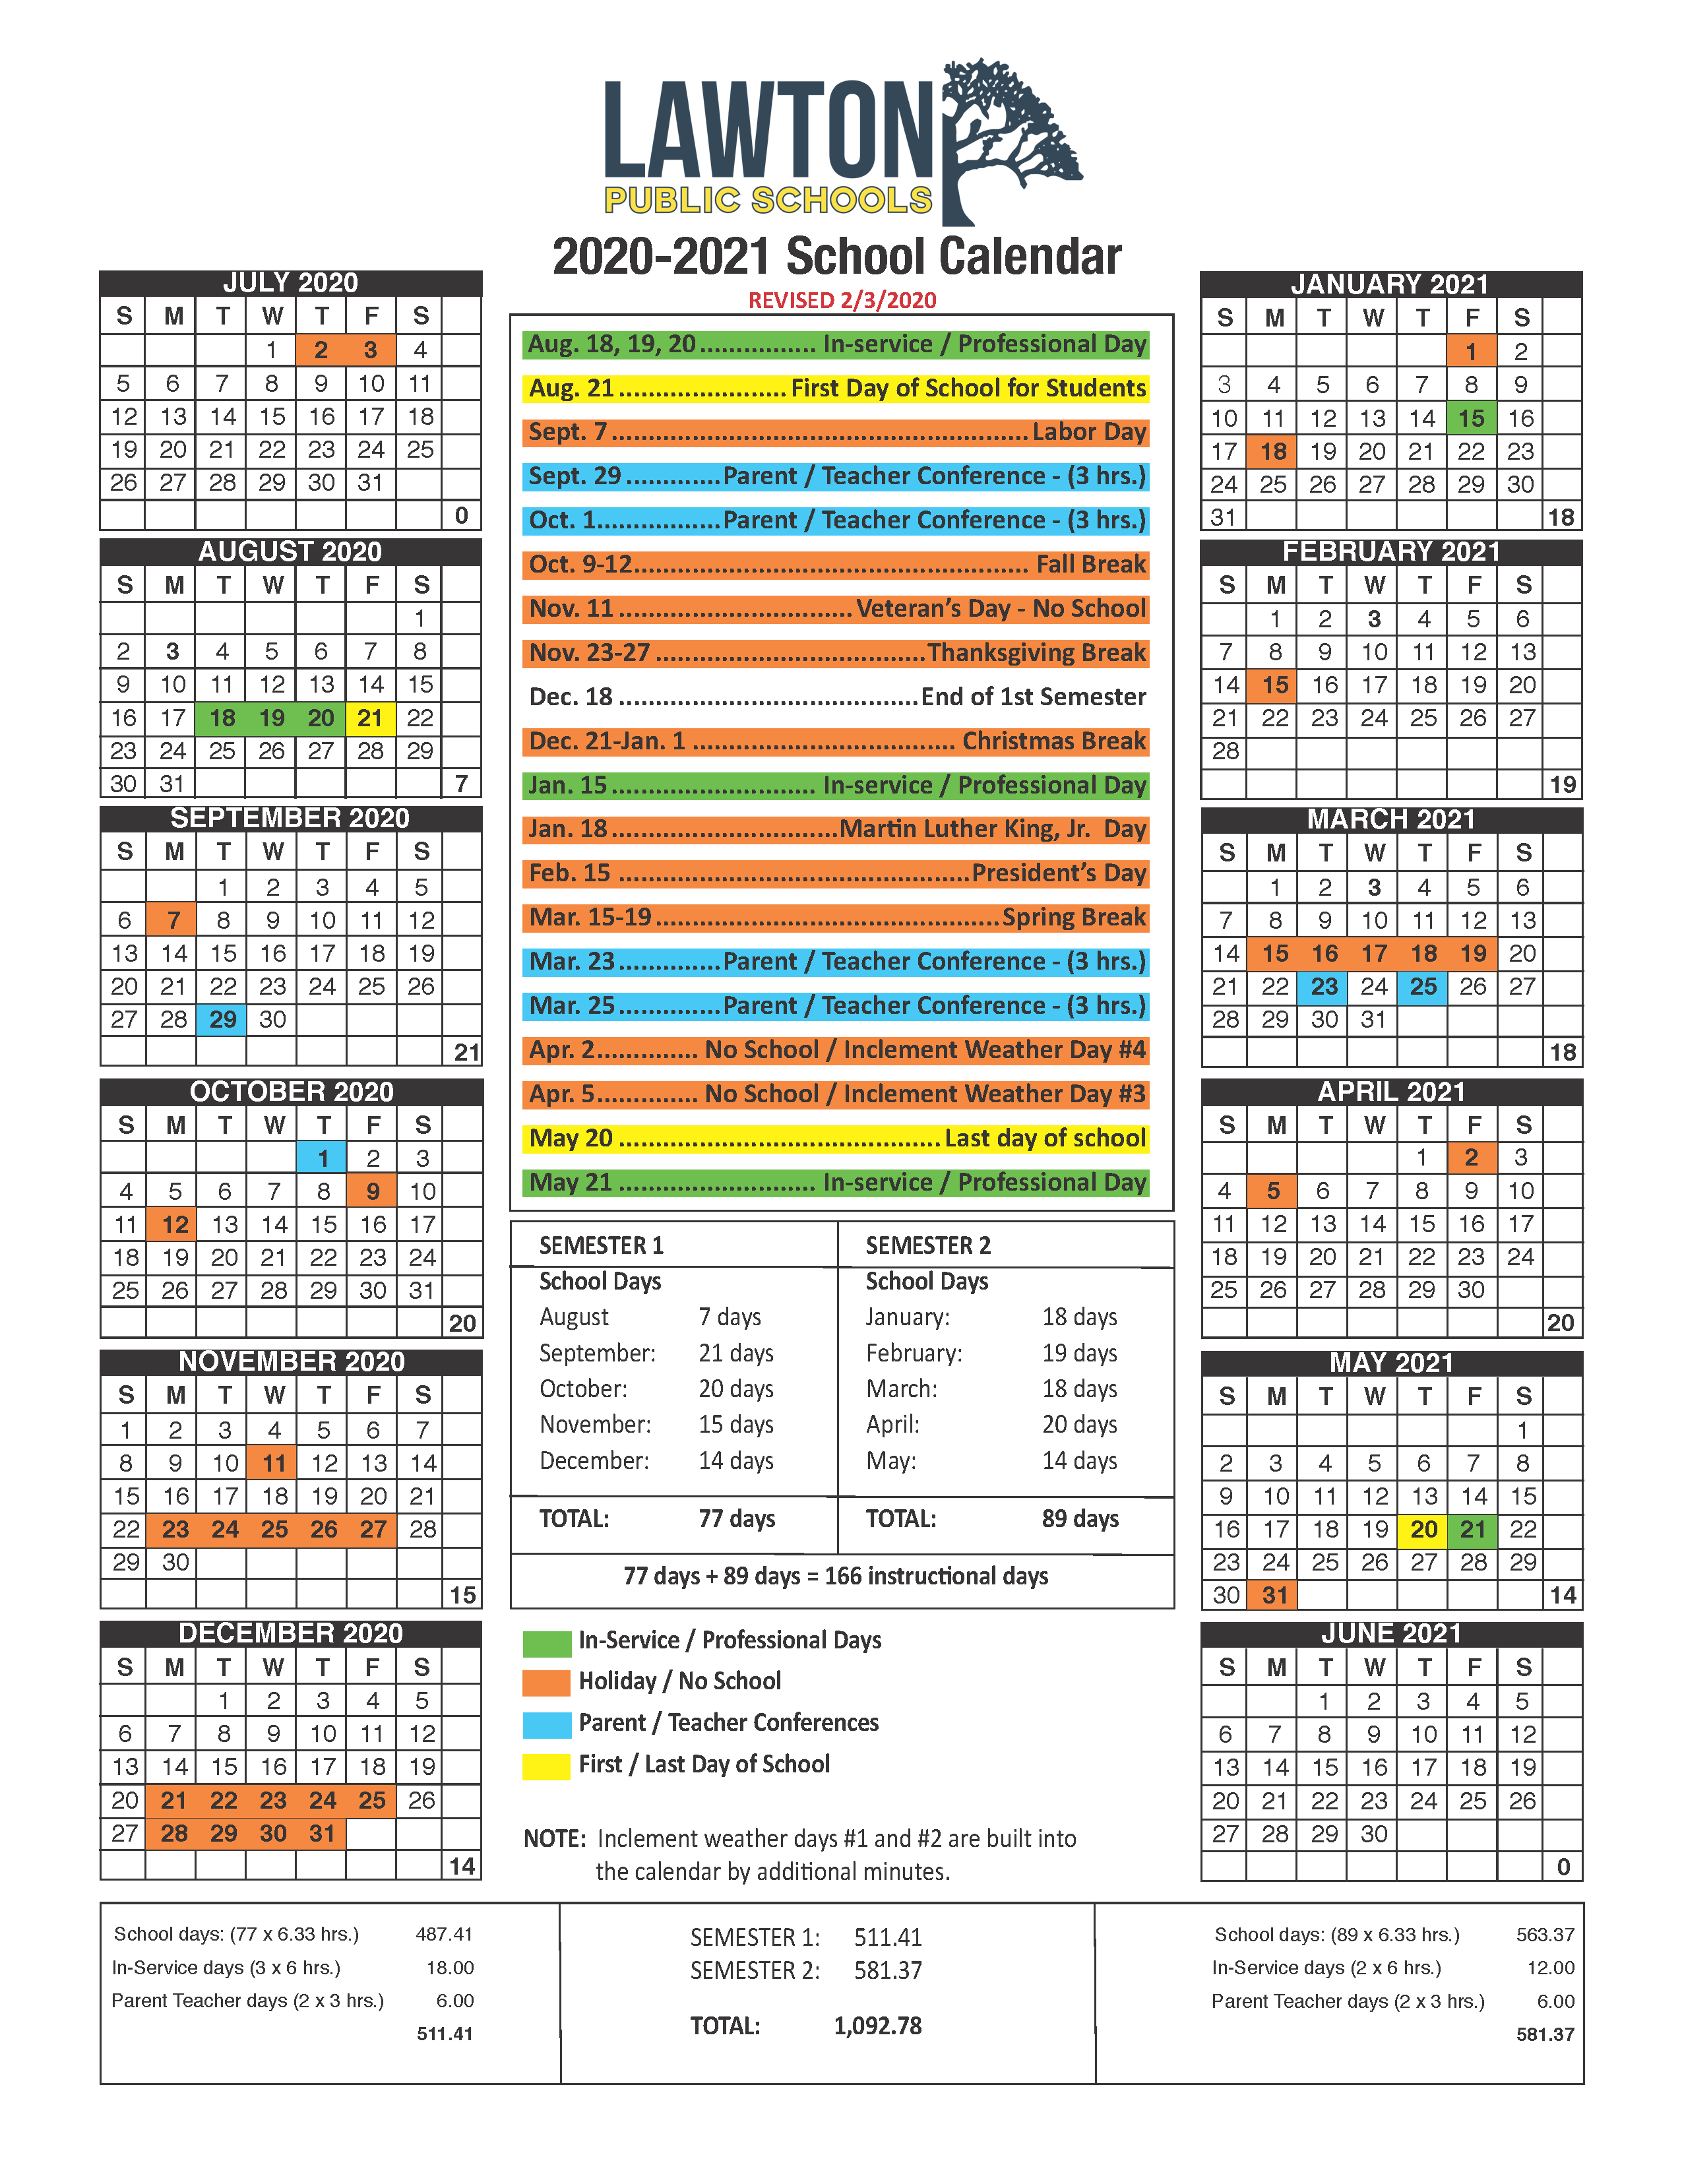 Lawton Public Schools Within Lincoln Unified School District Calendar 2021